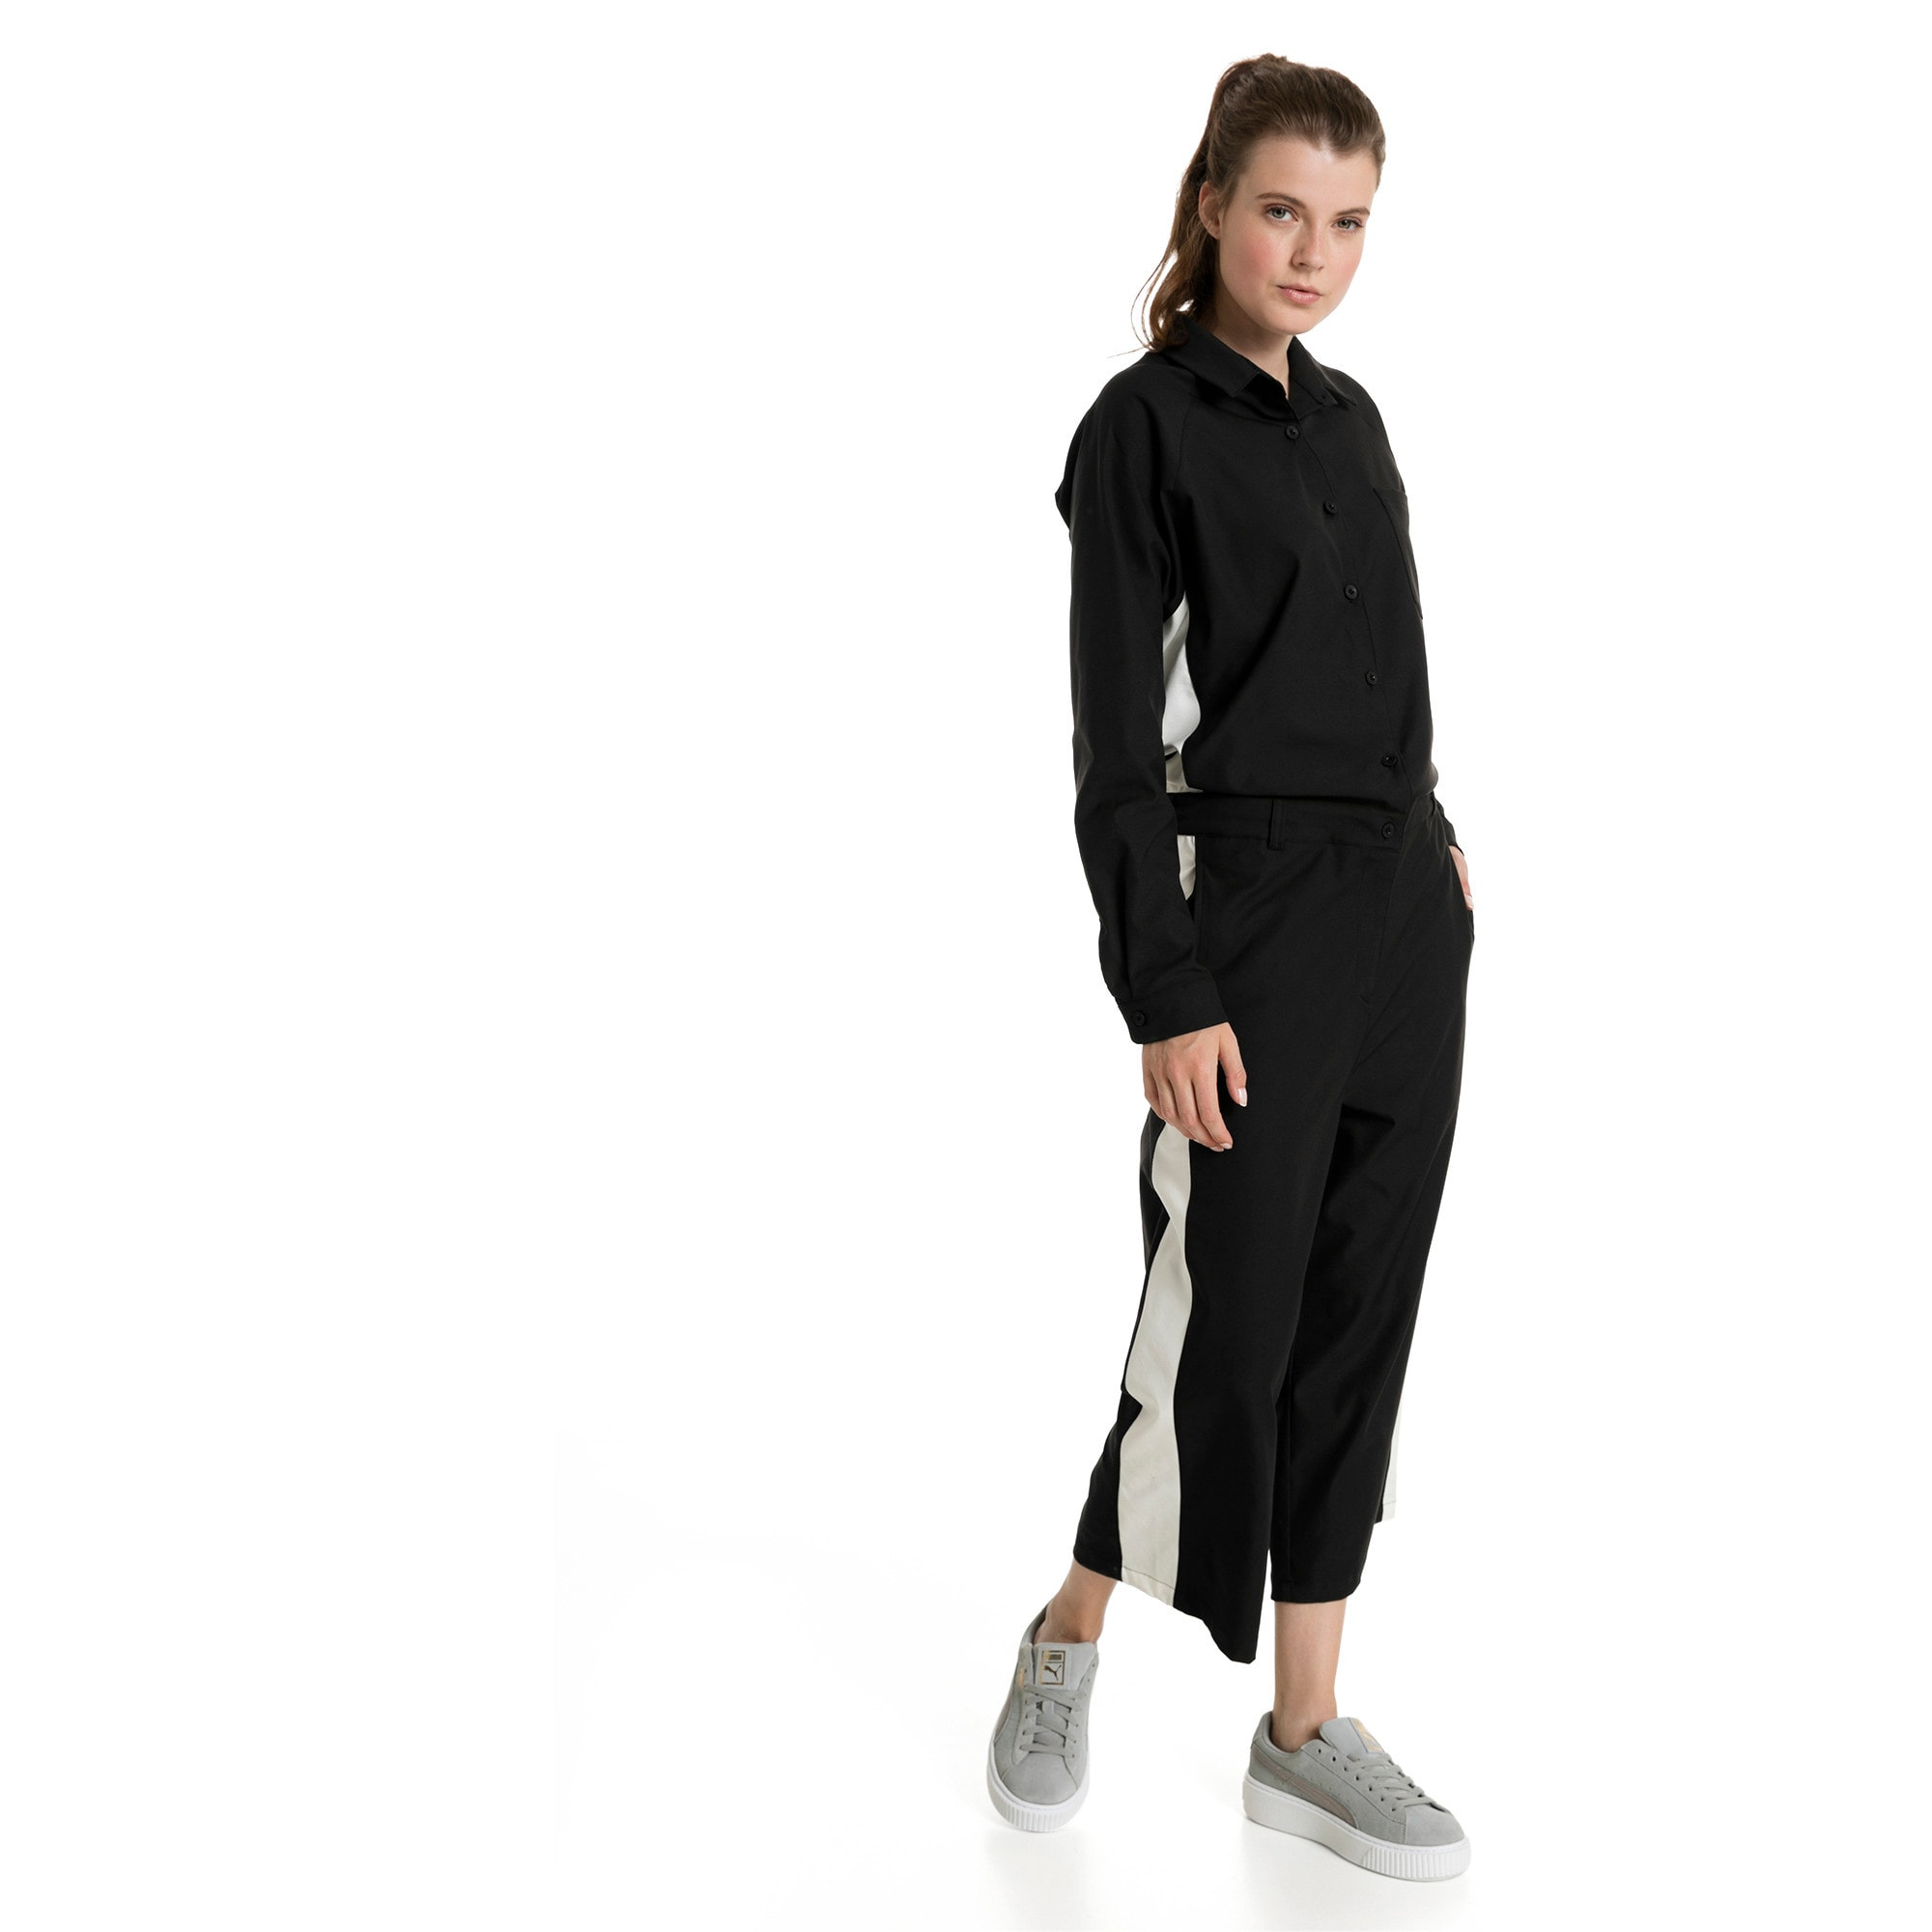 Thumbnail 3 of True Archive Women's Worker Overall, Puma Black, medium-IND